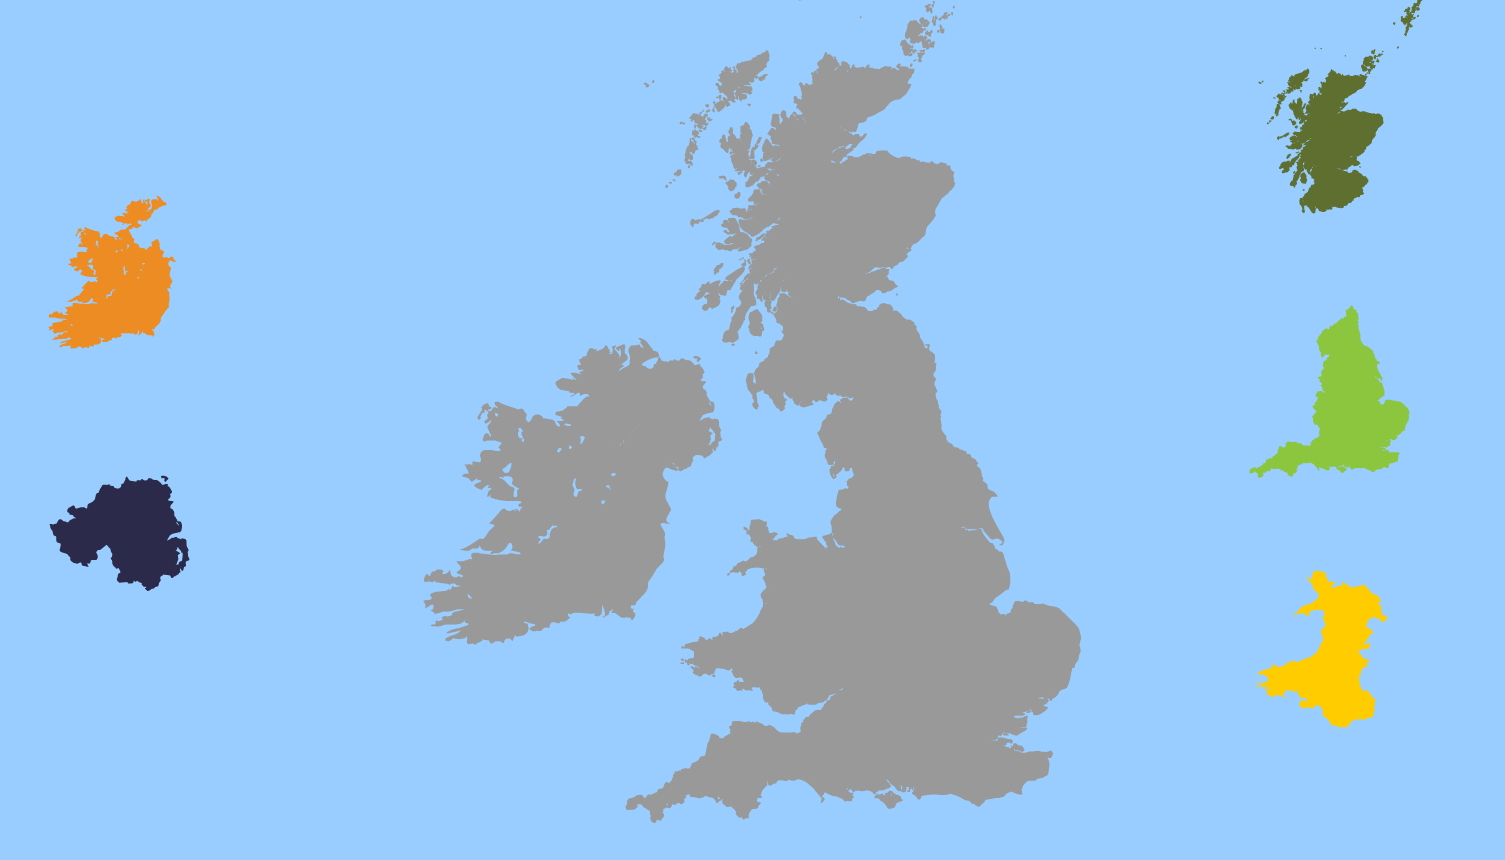 Countries puzzle of United Kingdom and Ireland. Toporopa